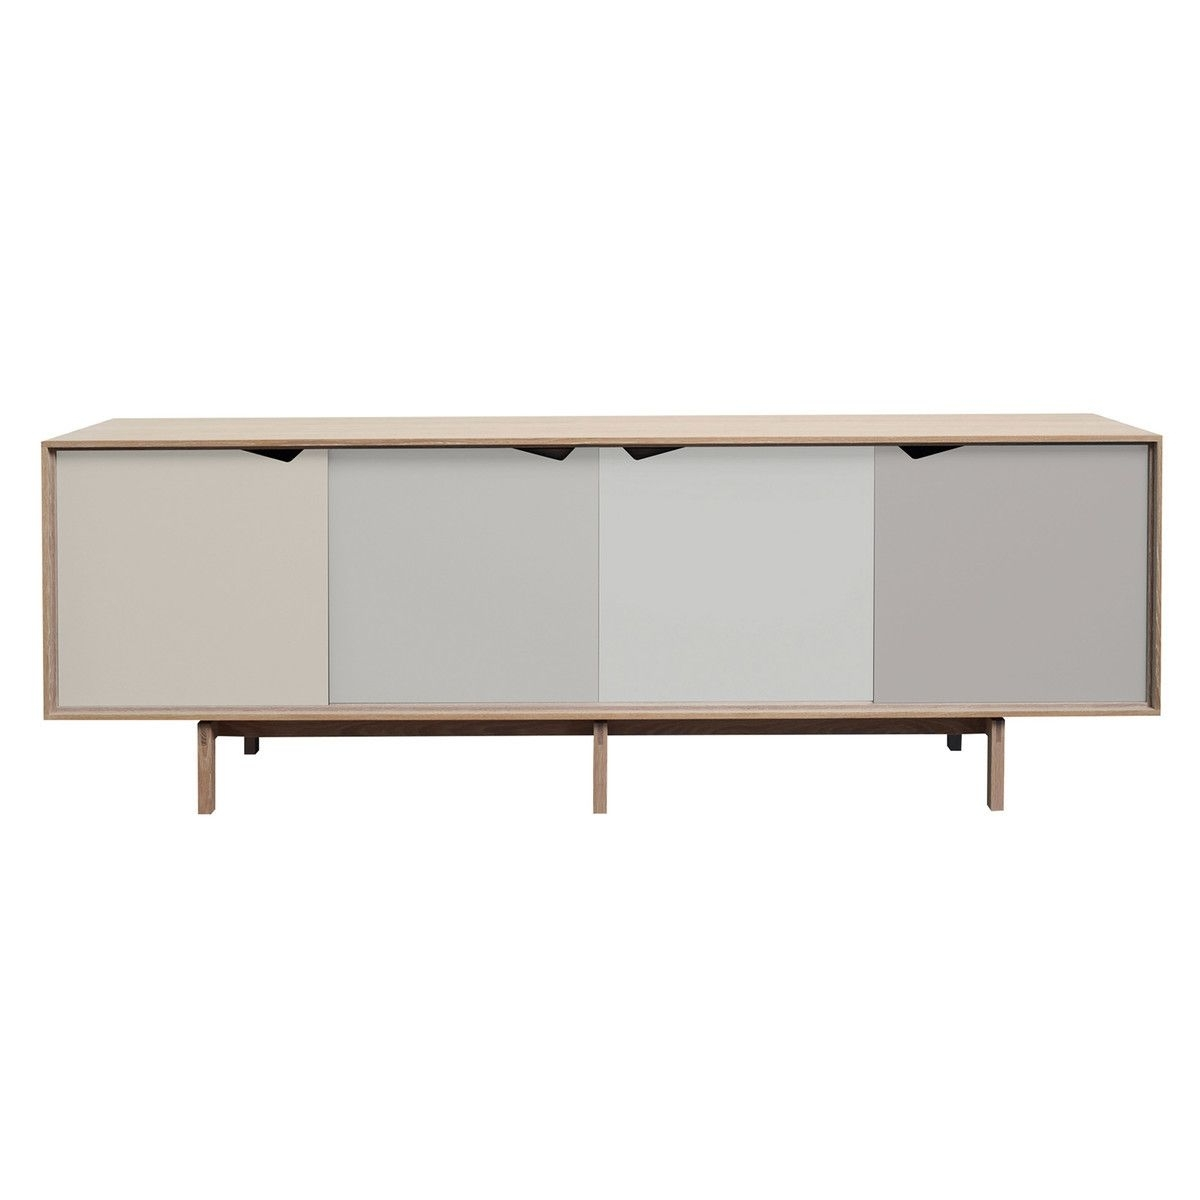 Andersen Furniture – S1 Sideboard, Eiche Geseift/ Türen Doeskin For Recent Iron Sideboards (#2 of 20)